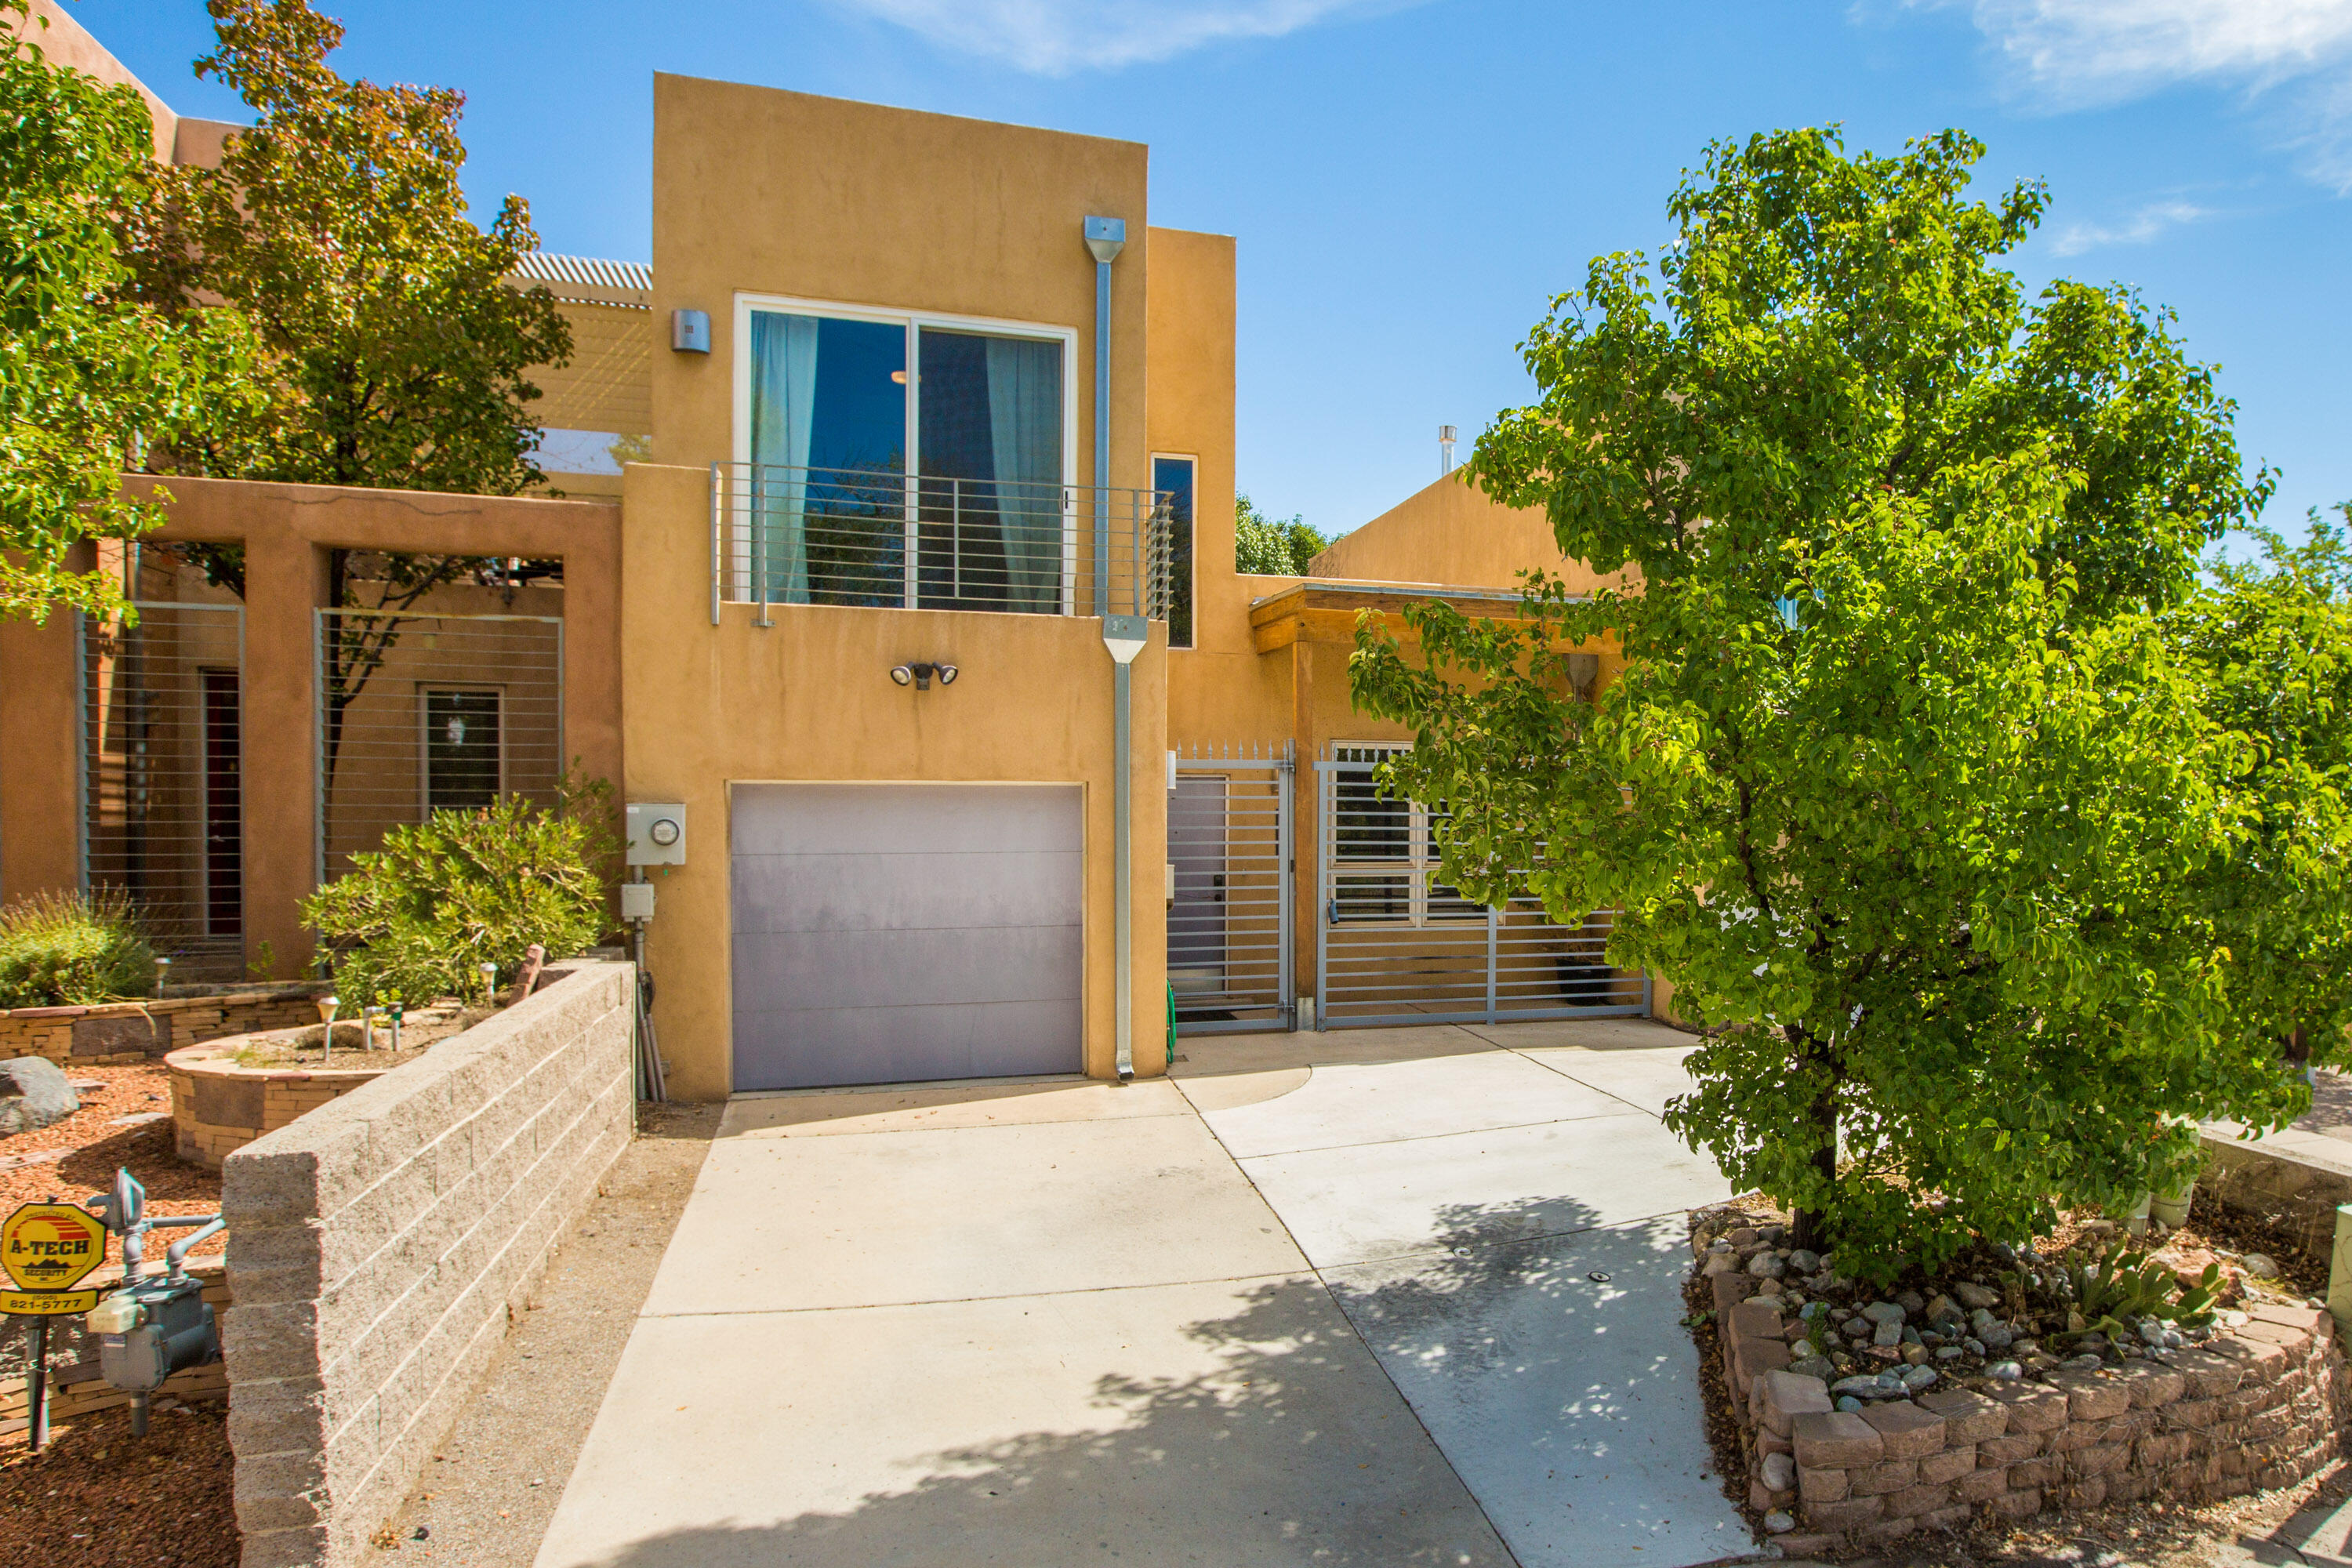 Well maintained Spruce Park townhome located in a highly desirable neighborhood close to UNM, Hospitals and Downtown with close access to bike trails, the freeway and the Rail Runner. This townhome features 3 bedrooms, 2 full bath, open living and dining with a 2 way indoor/outdoor fireplace perfect for outdoor entertaining on the backyard covered patio. The primary bedroom is located on the first floor with sliding glass doors leading to the private backyard. East and West facing balconies provide views from the second level bedrooms. Recent upgrades include a new radiant heat system, 2 new coolers, new TPO roof and newer paint. No HOA fees. Contact your broker for a showing!